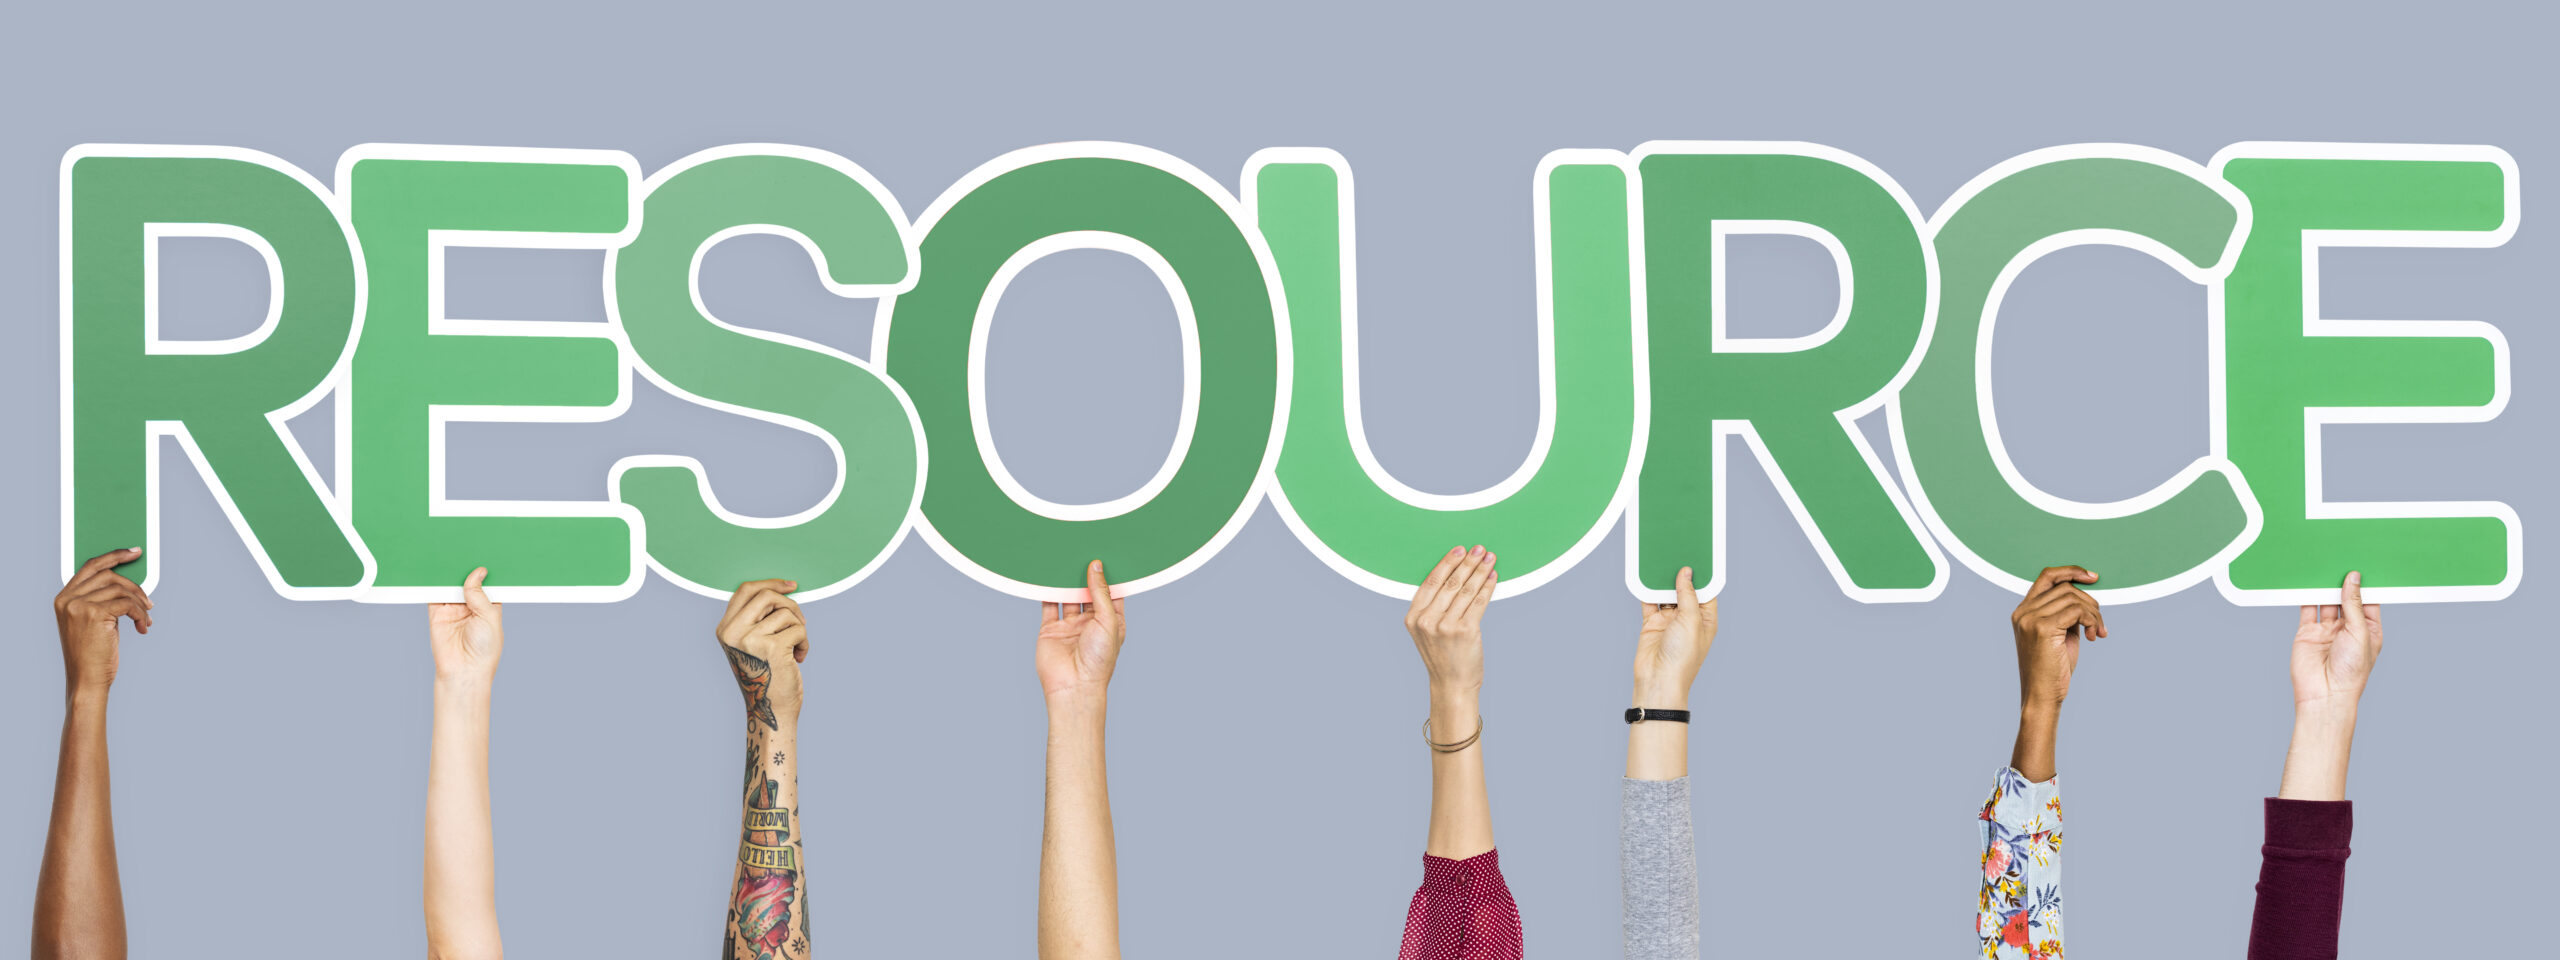 Green letters forming the word resource